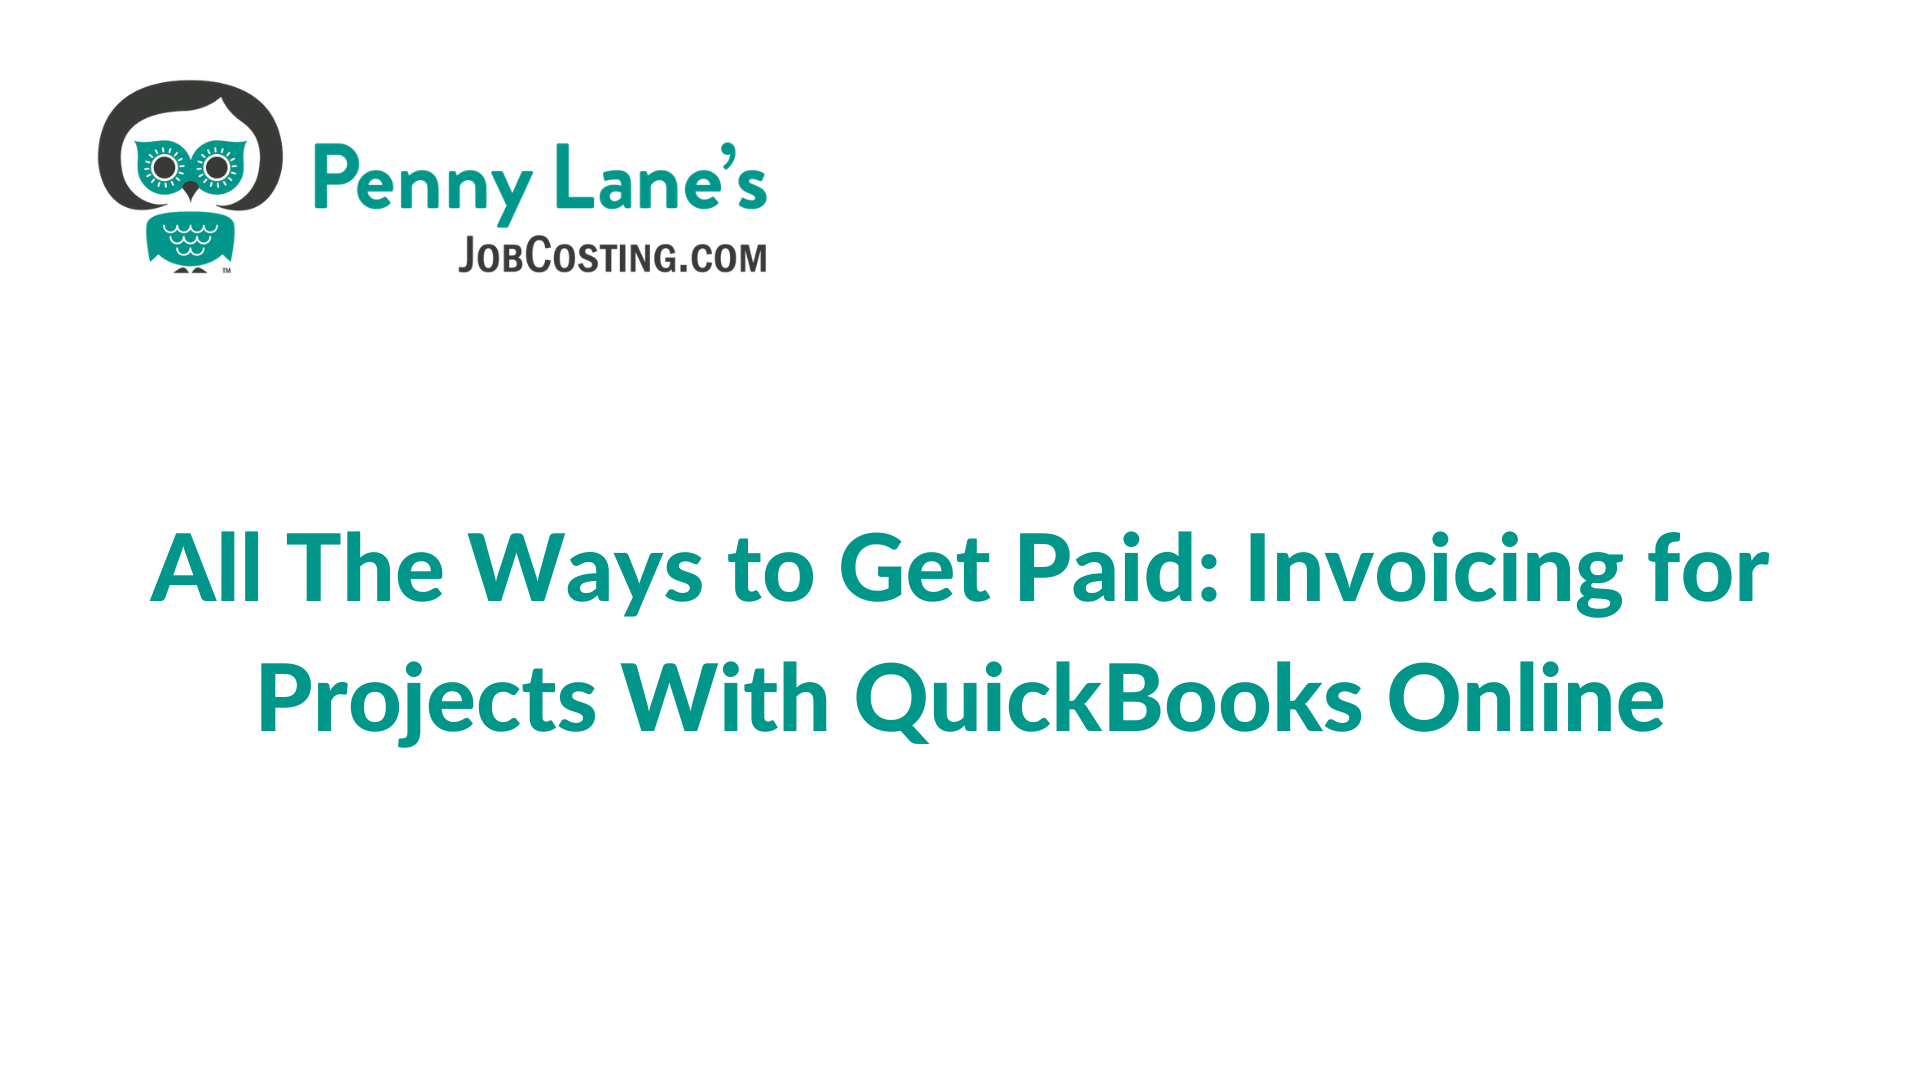 All the Ways to Get Paid: Invoicing for Projects With QuickBooks Online